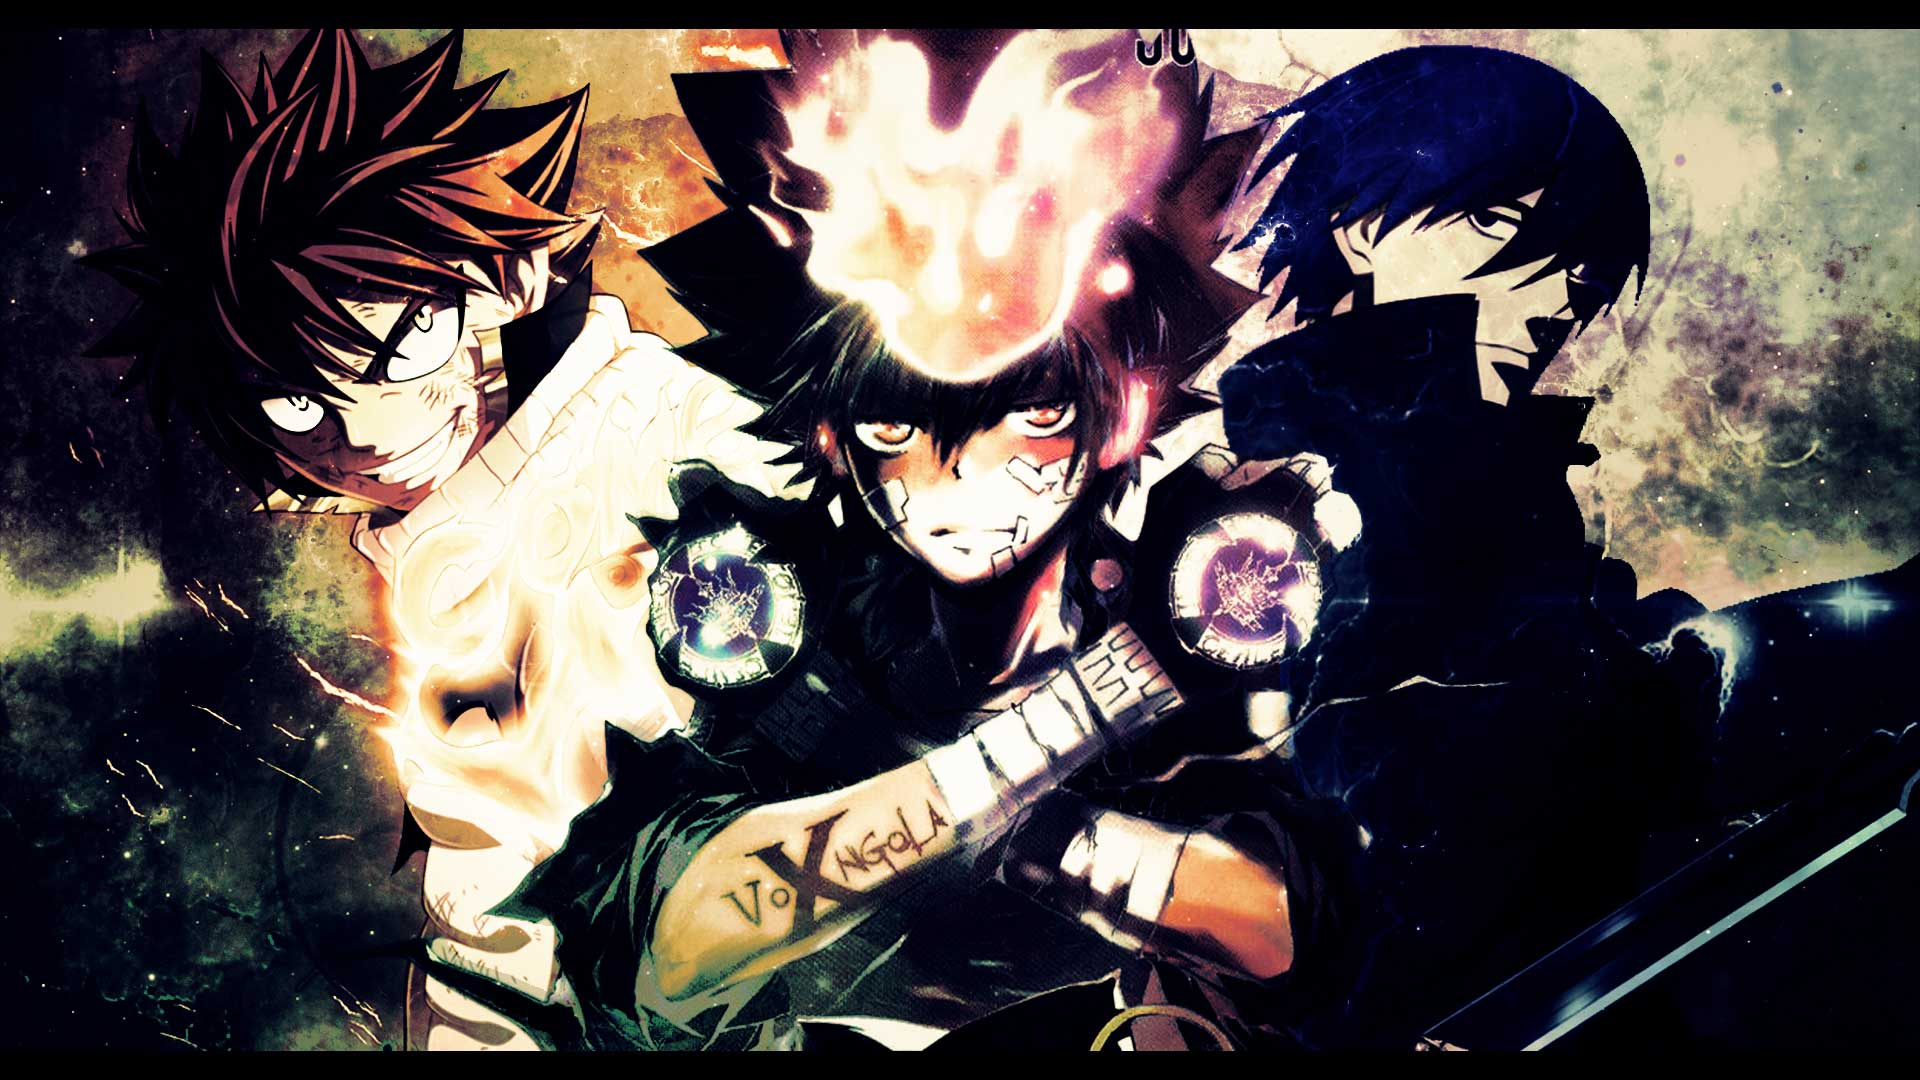 1920x1080 Fairy Tail Phone Wallpaper | HD Wallpapers | Pinterest | Wallpaper ...